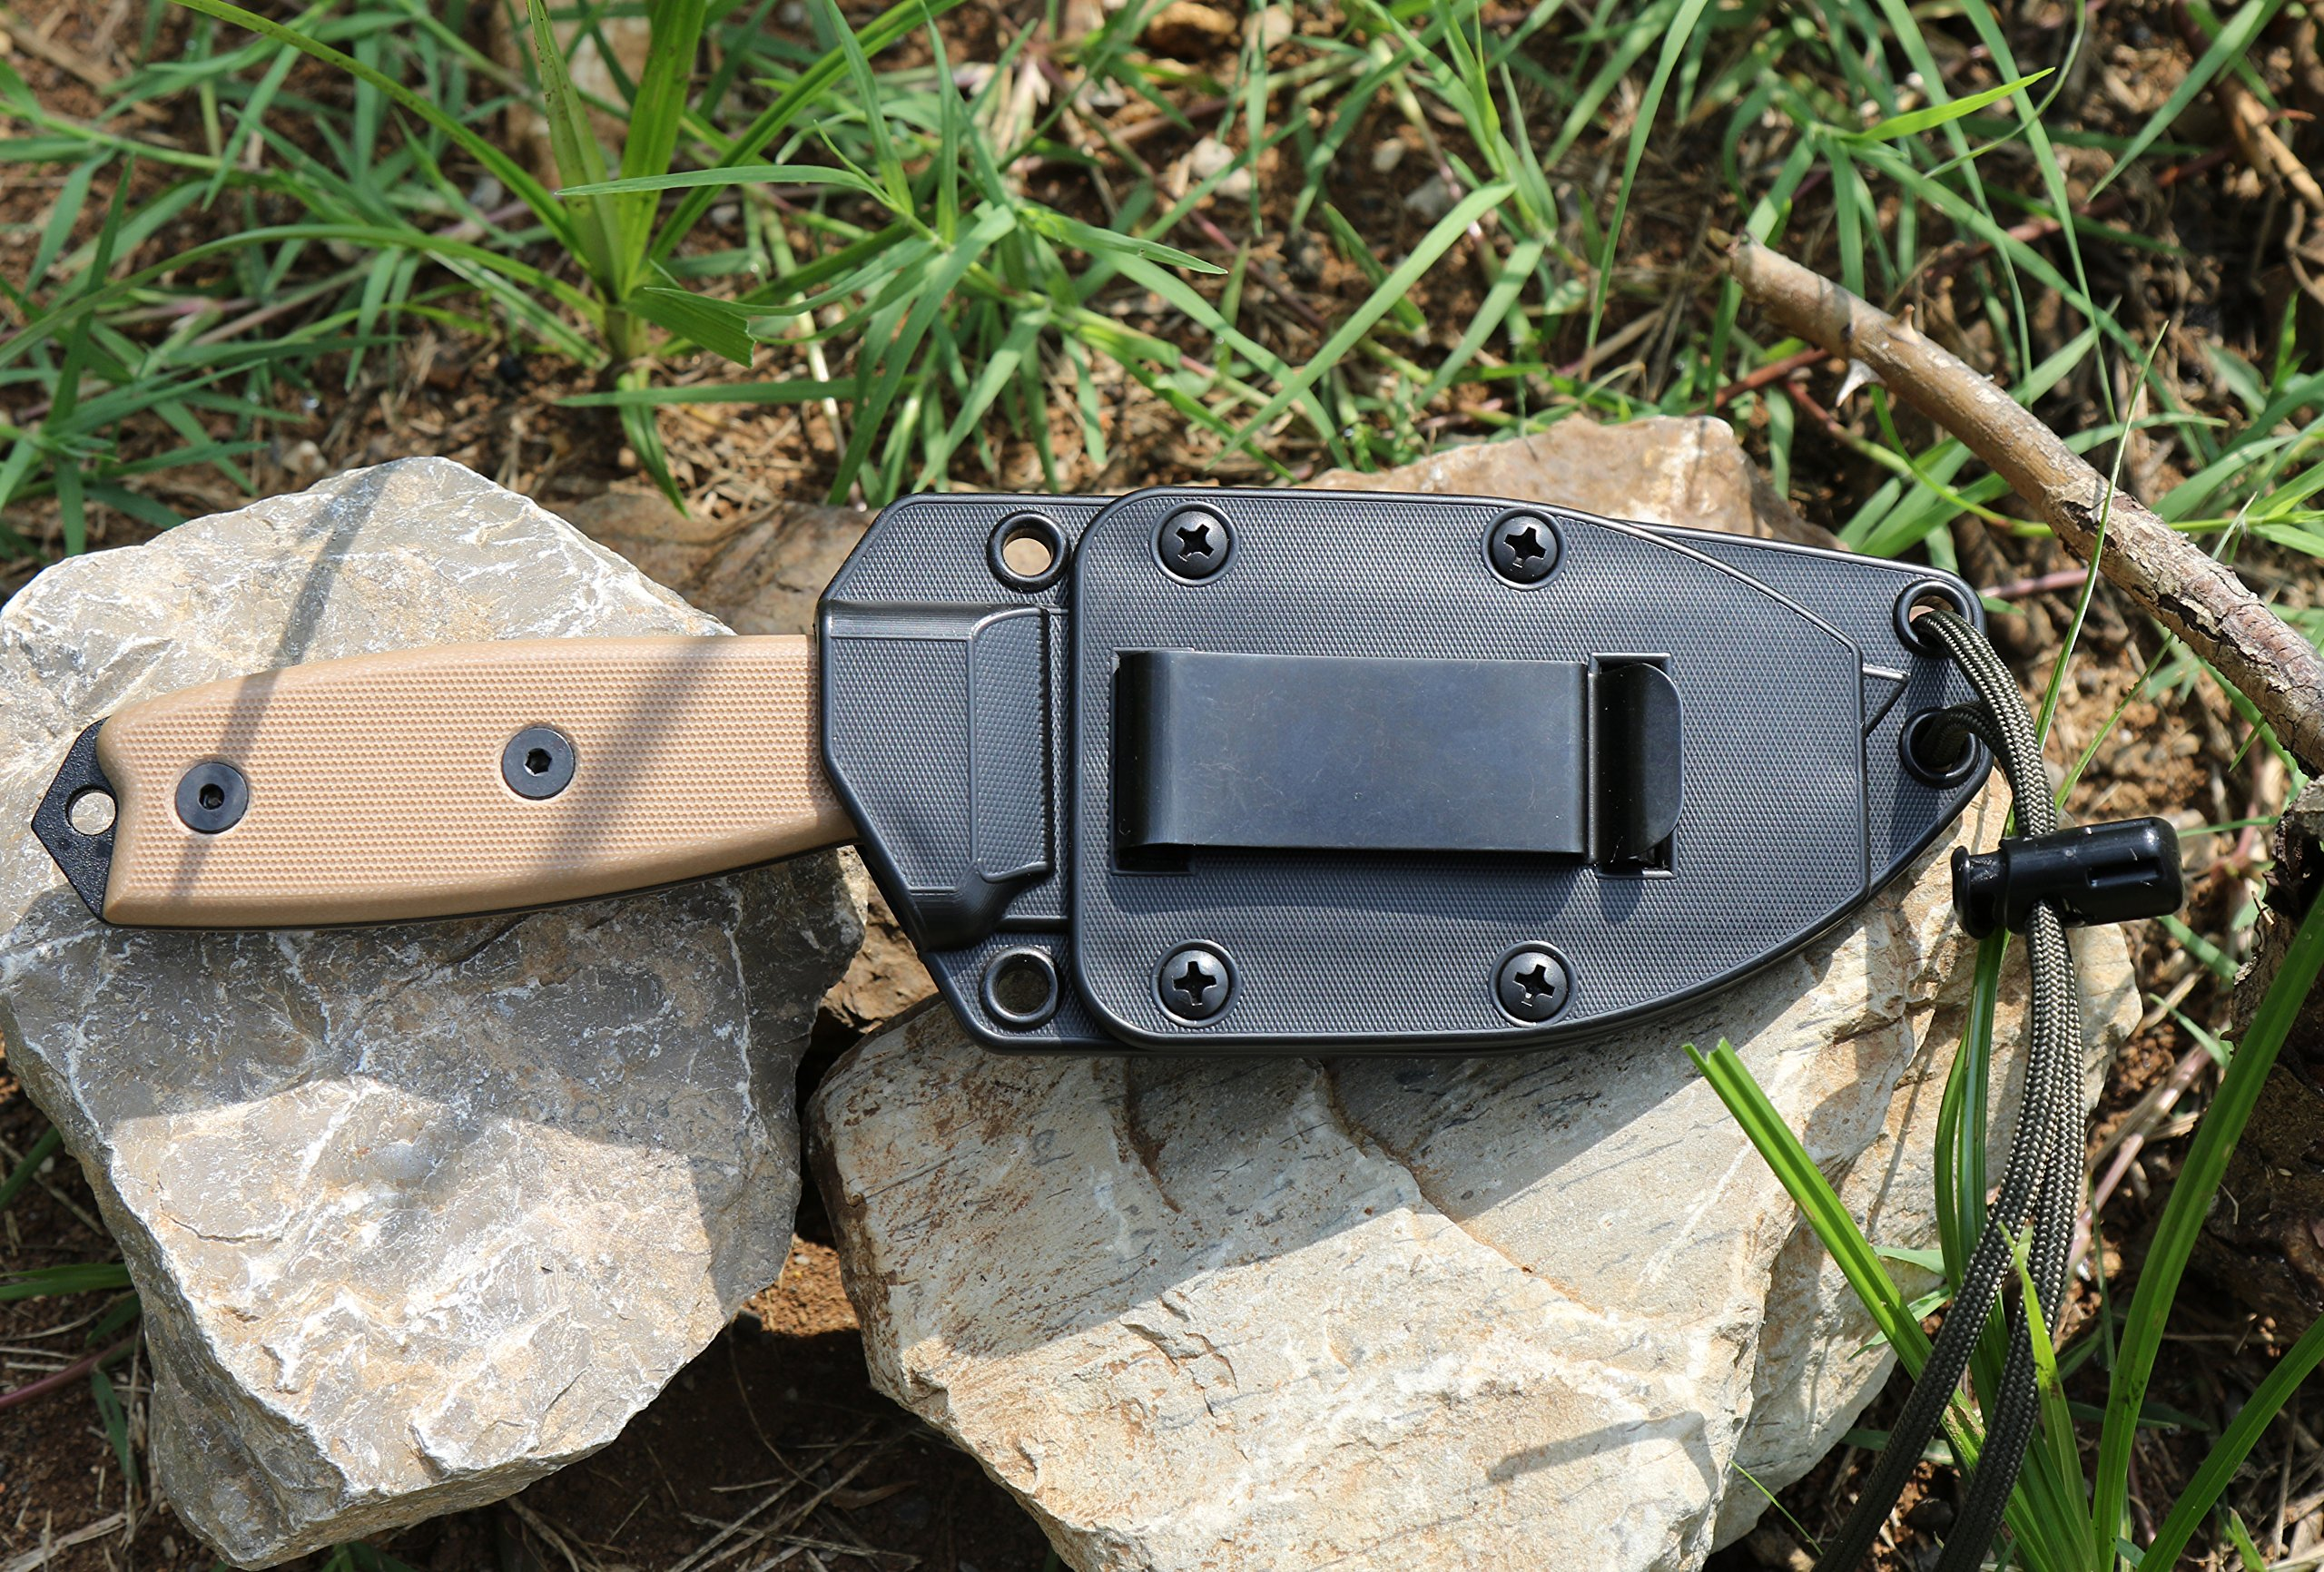 ESEE Knives 3P Fixed Blade Knife with Molded Polymer Sheath by ESEE (Image #4)